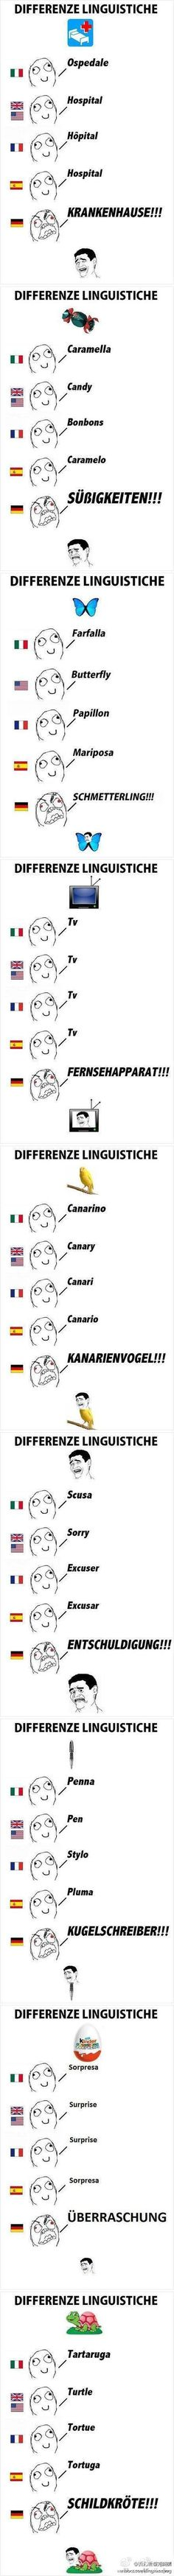 We all know German sounds scary!